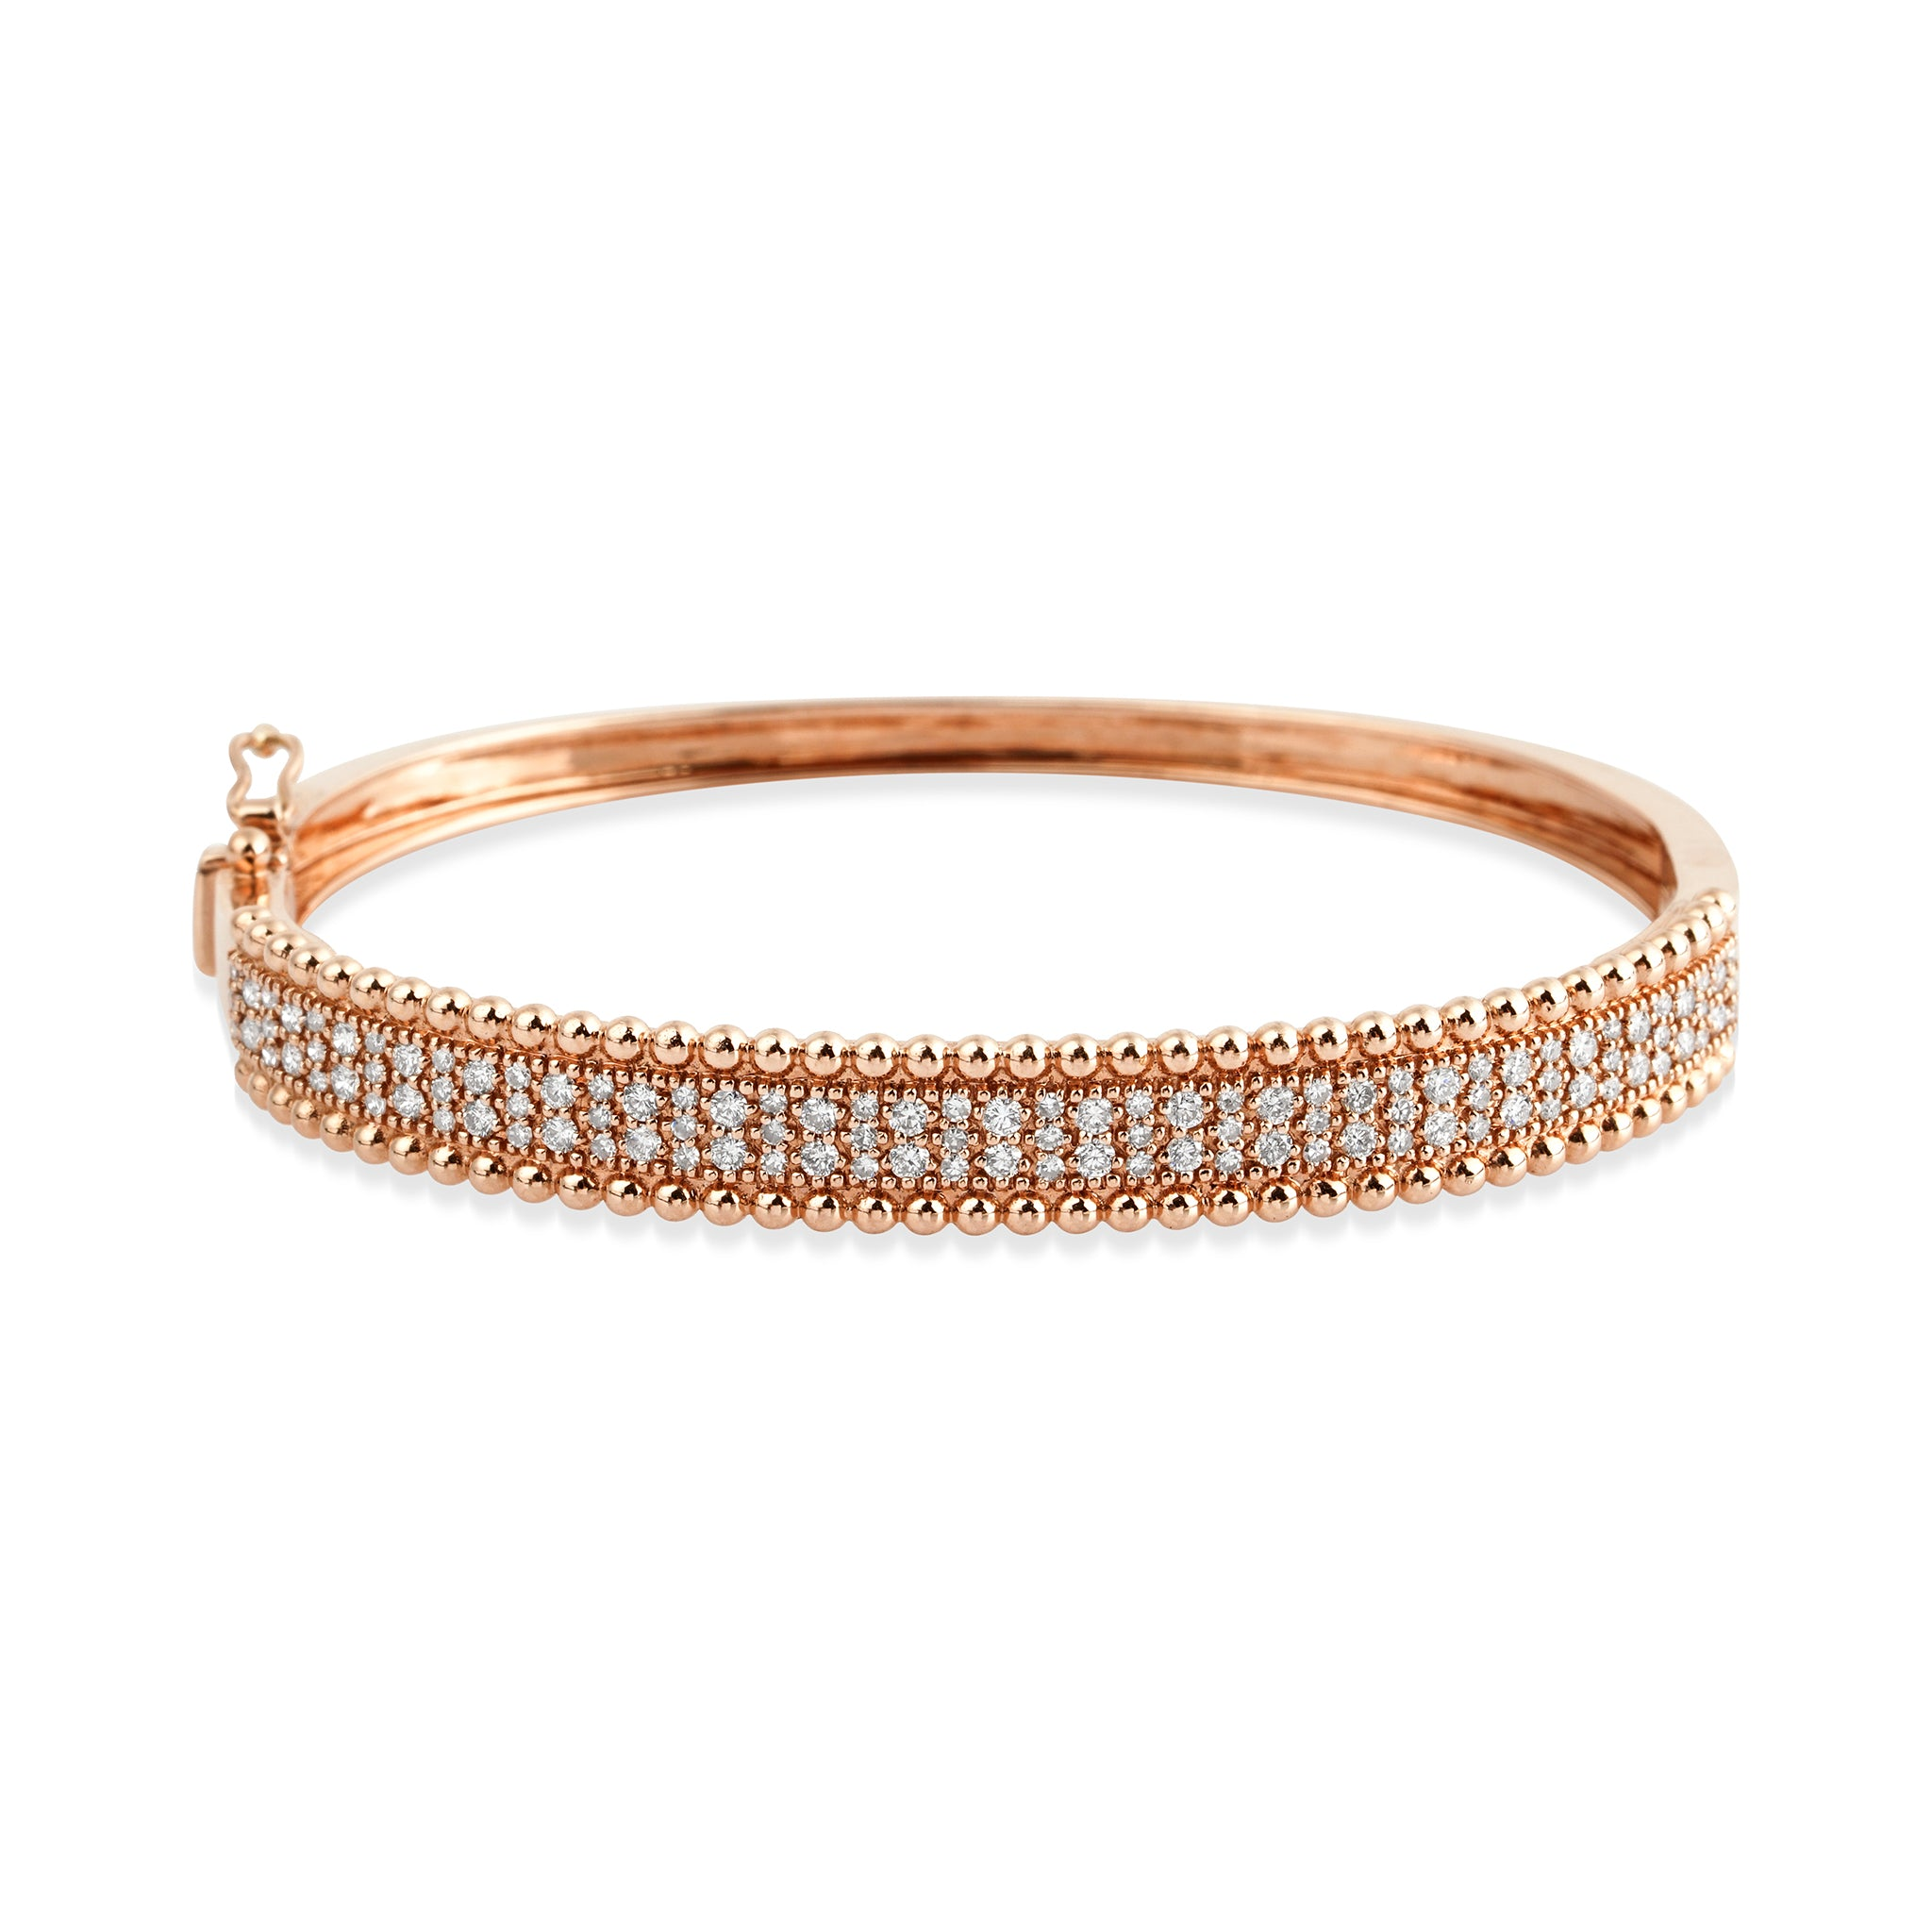 14KT Gold and Diamond LUXE Bangle Bracelet - DilaraSaatci